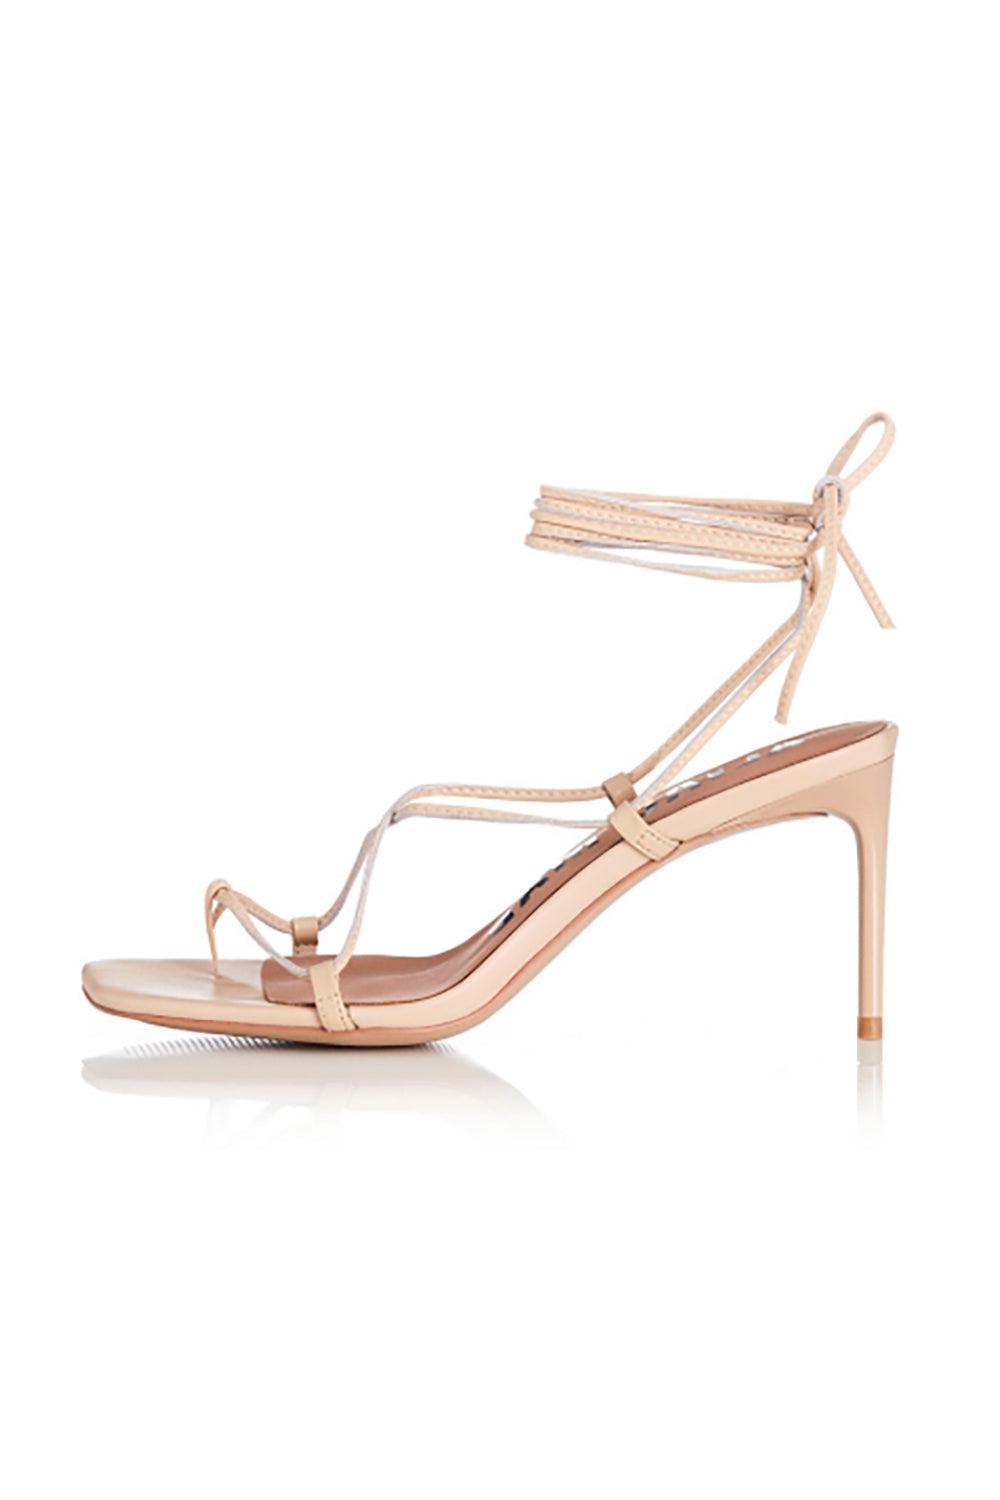 Alias Mae Inkia Heel in Natural Leather